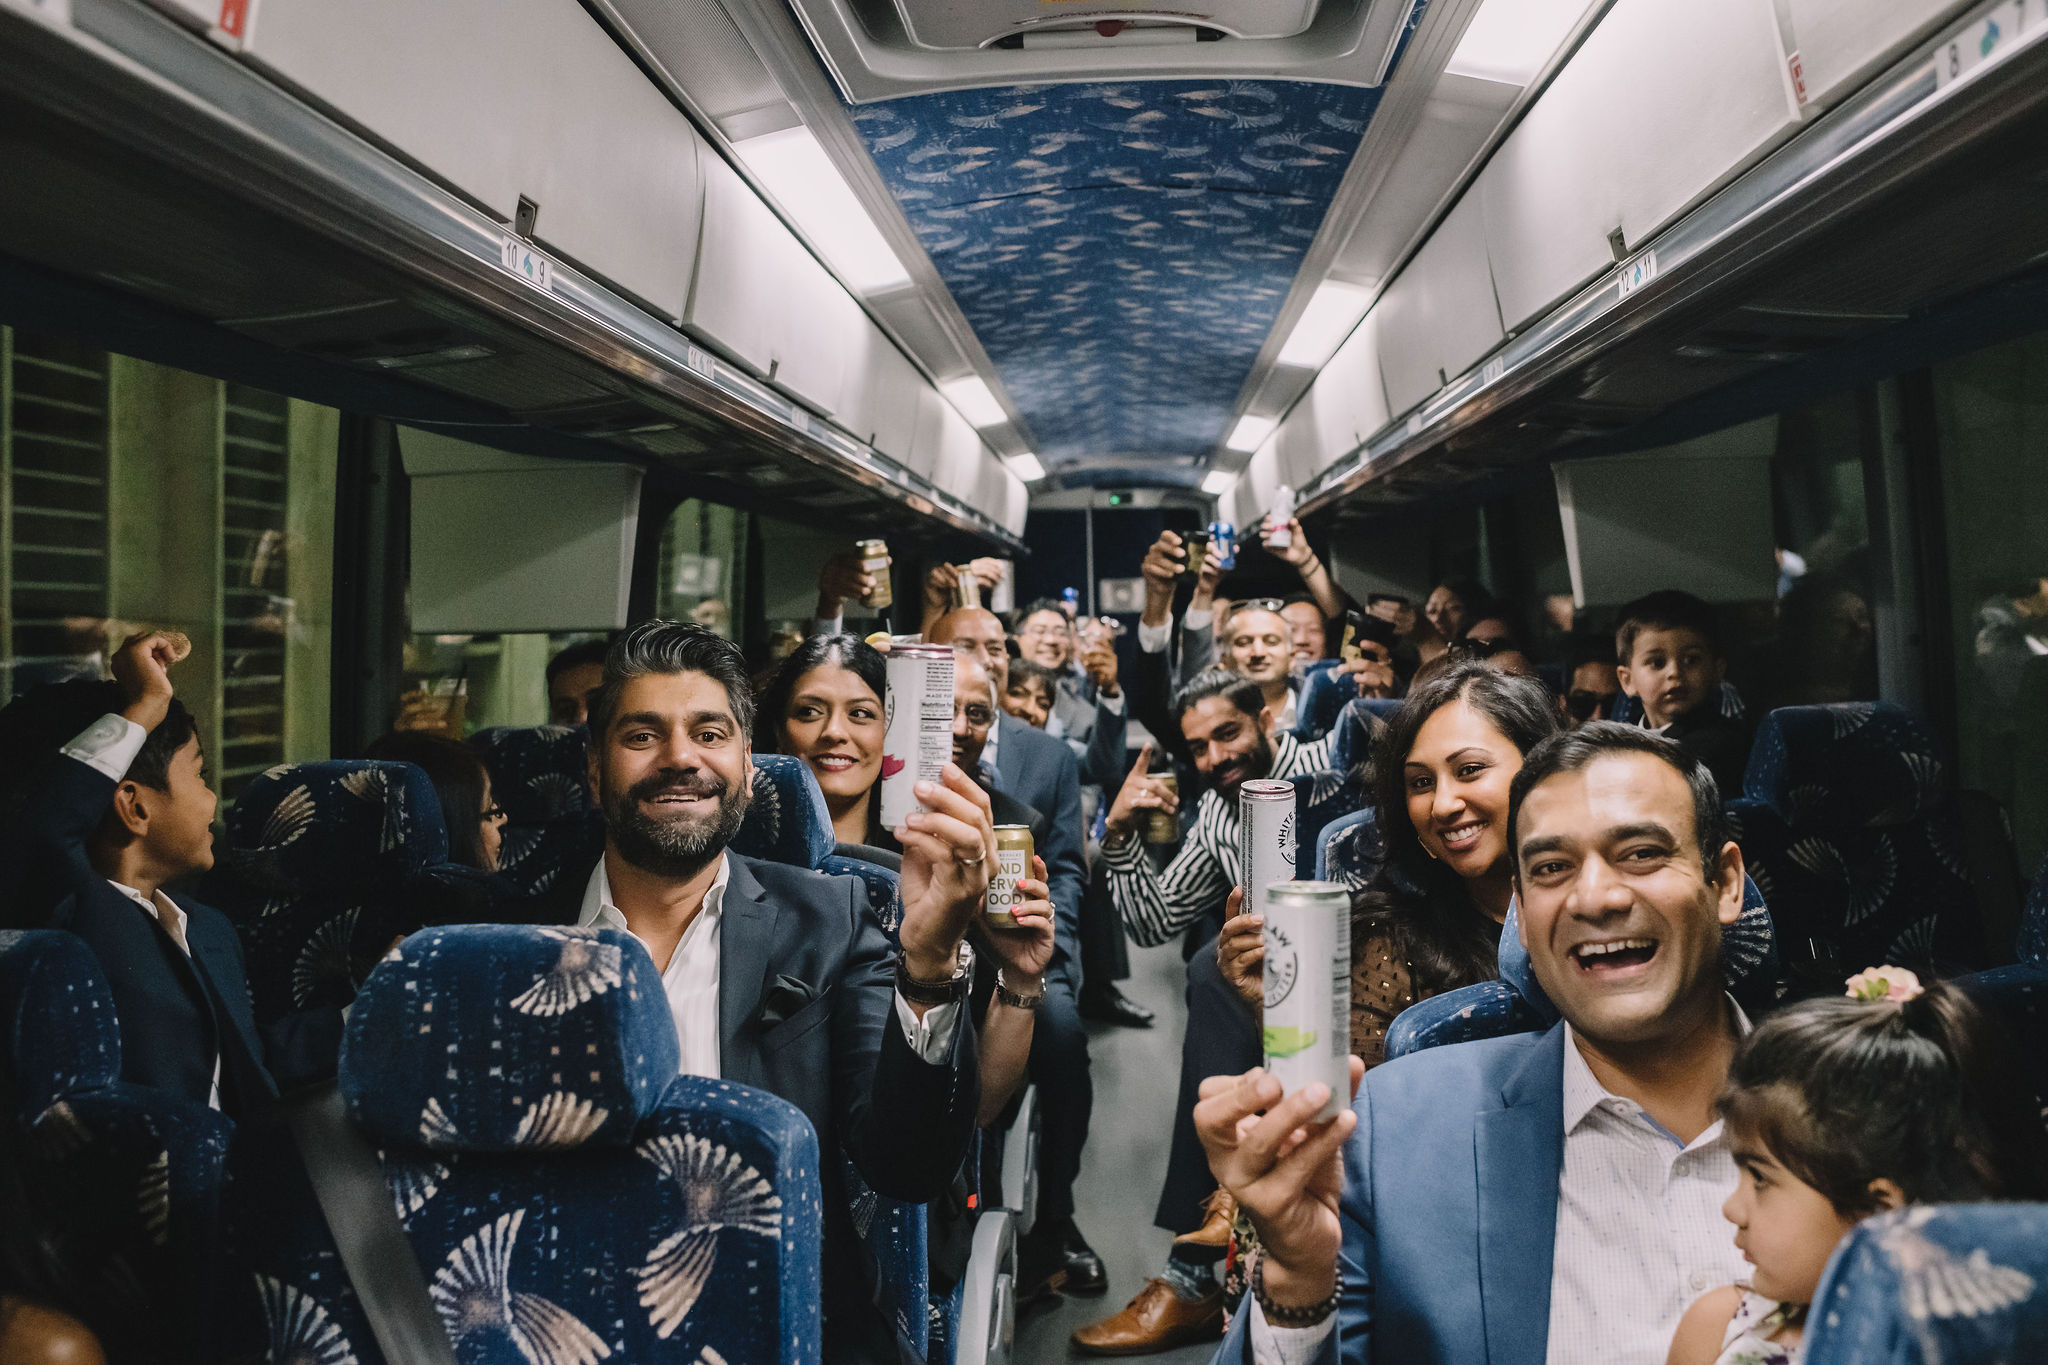 Wedding guests arrived to the baraat/second line via bus.